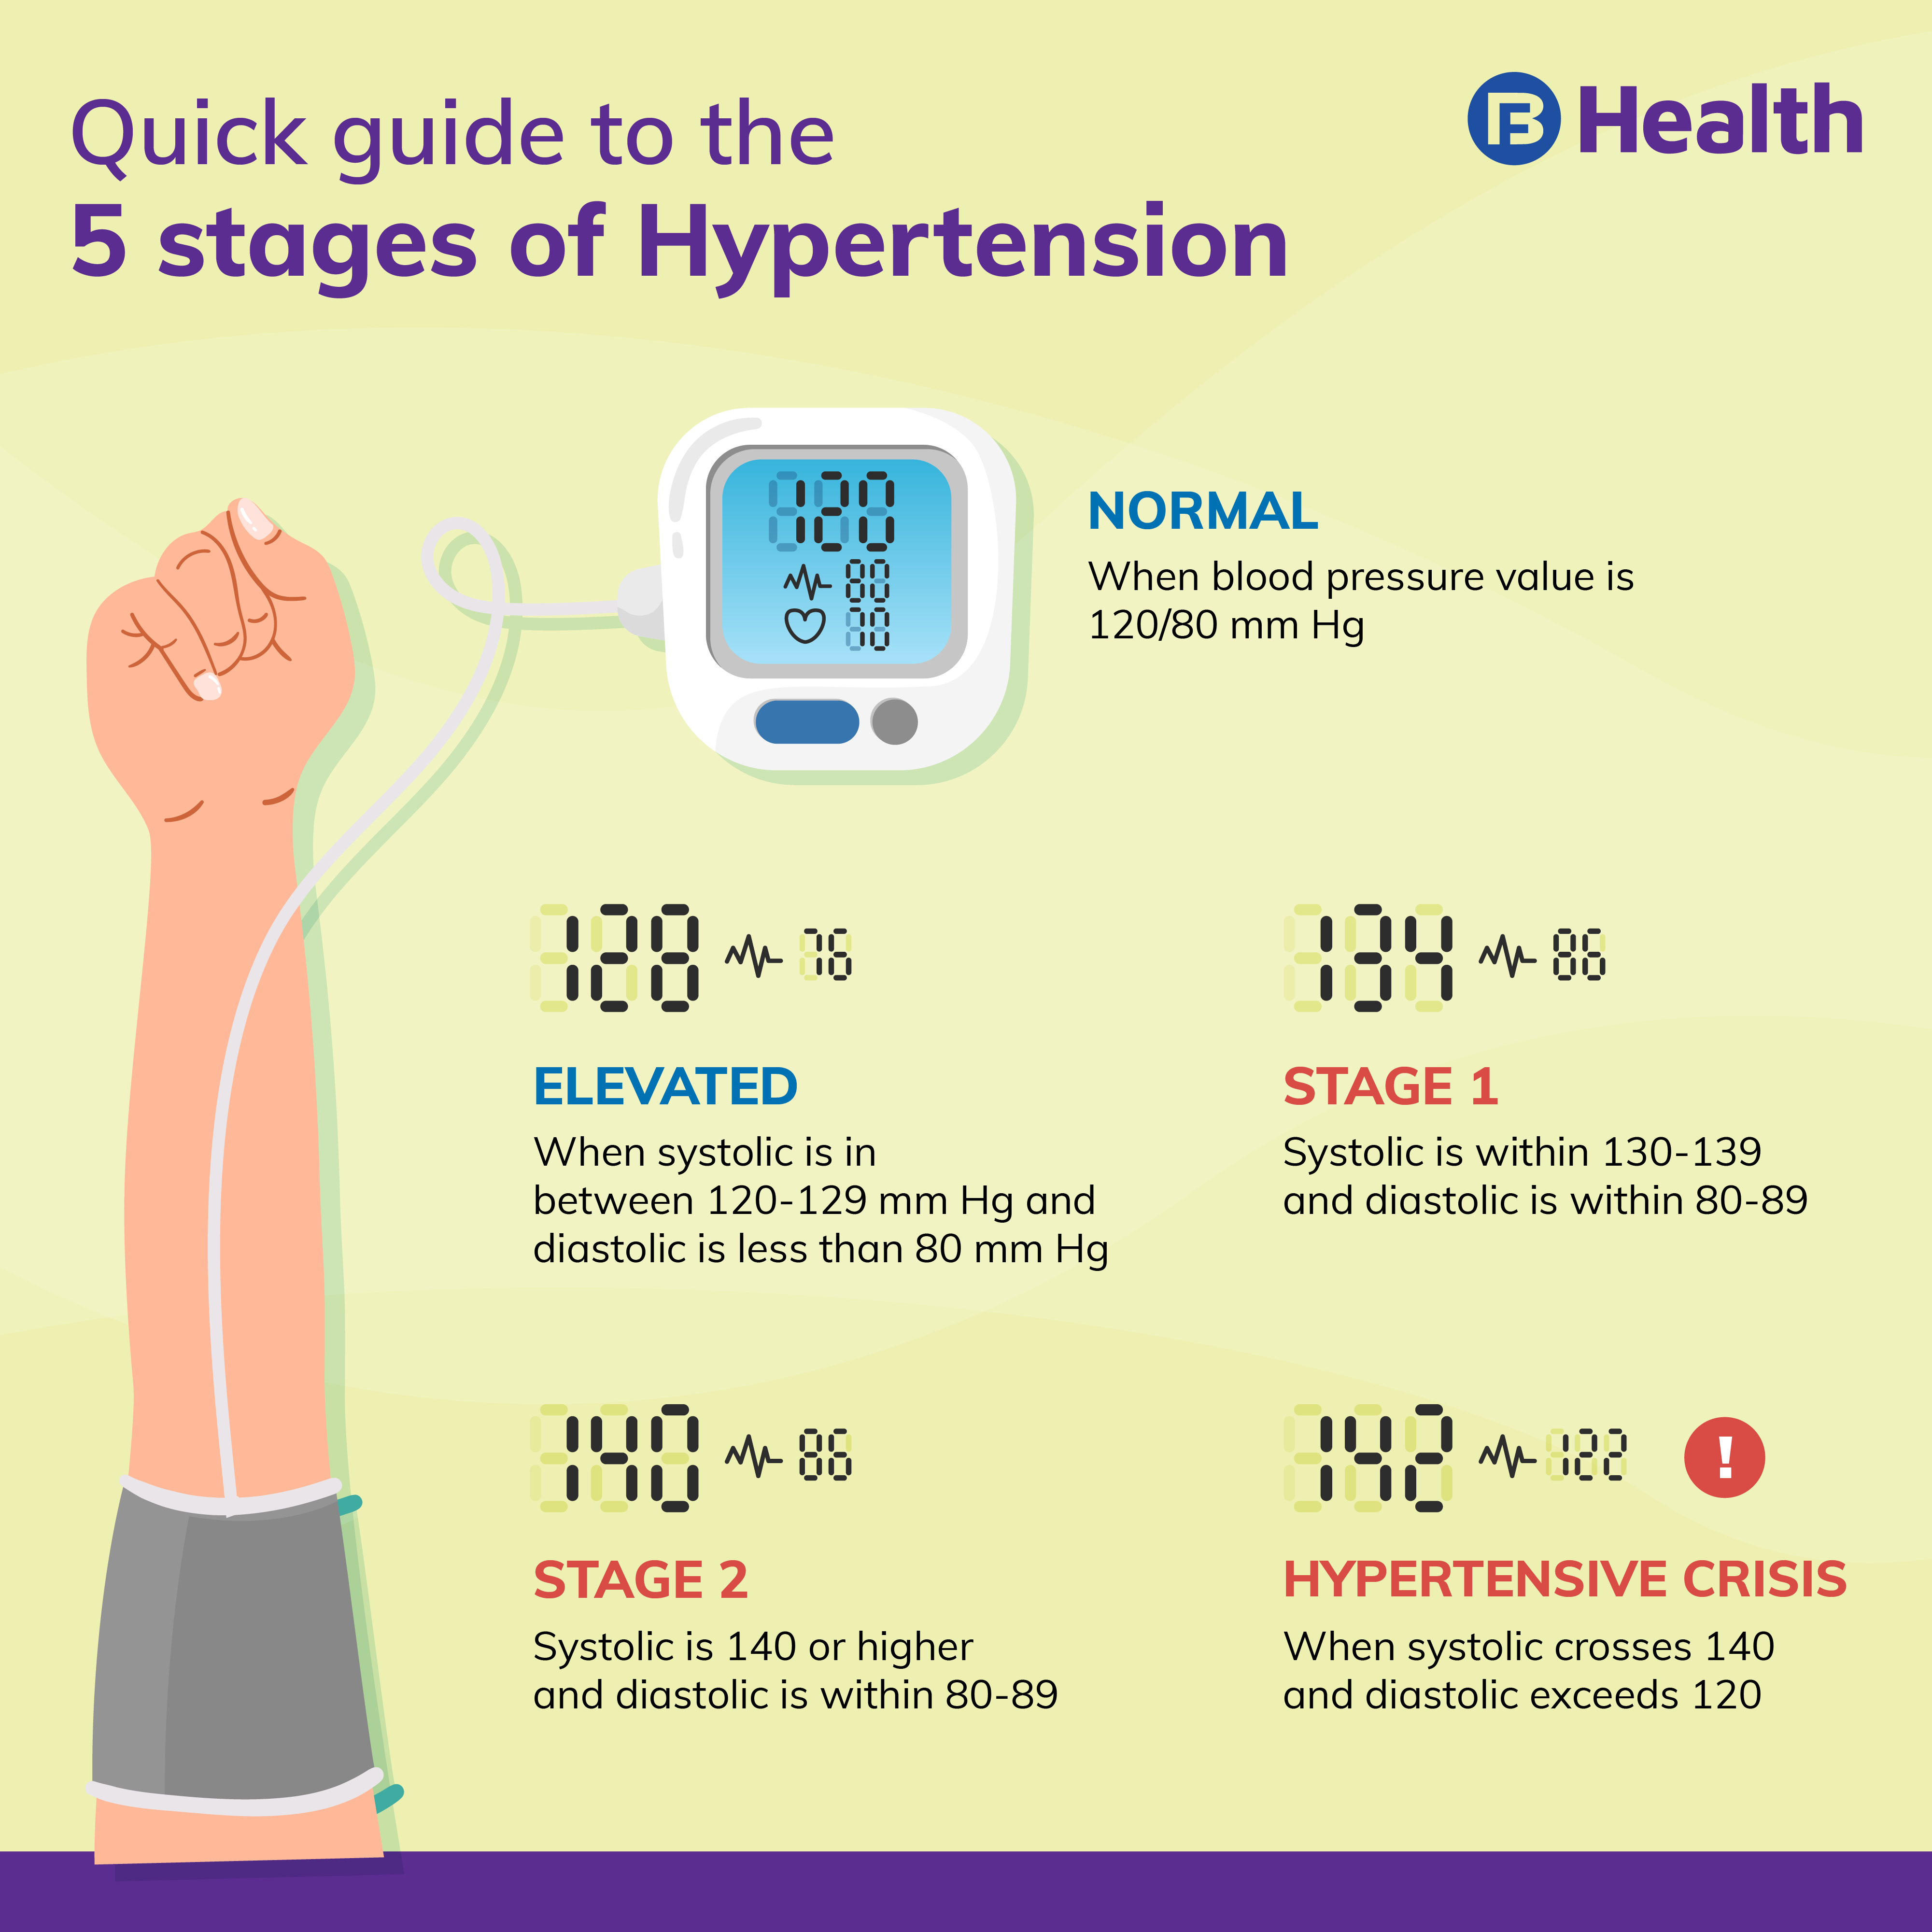 Guide to stages of hypertension